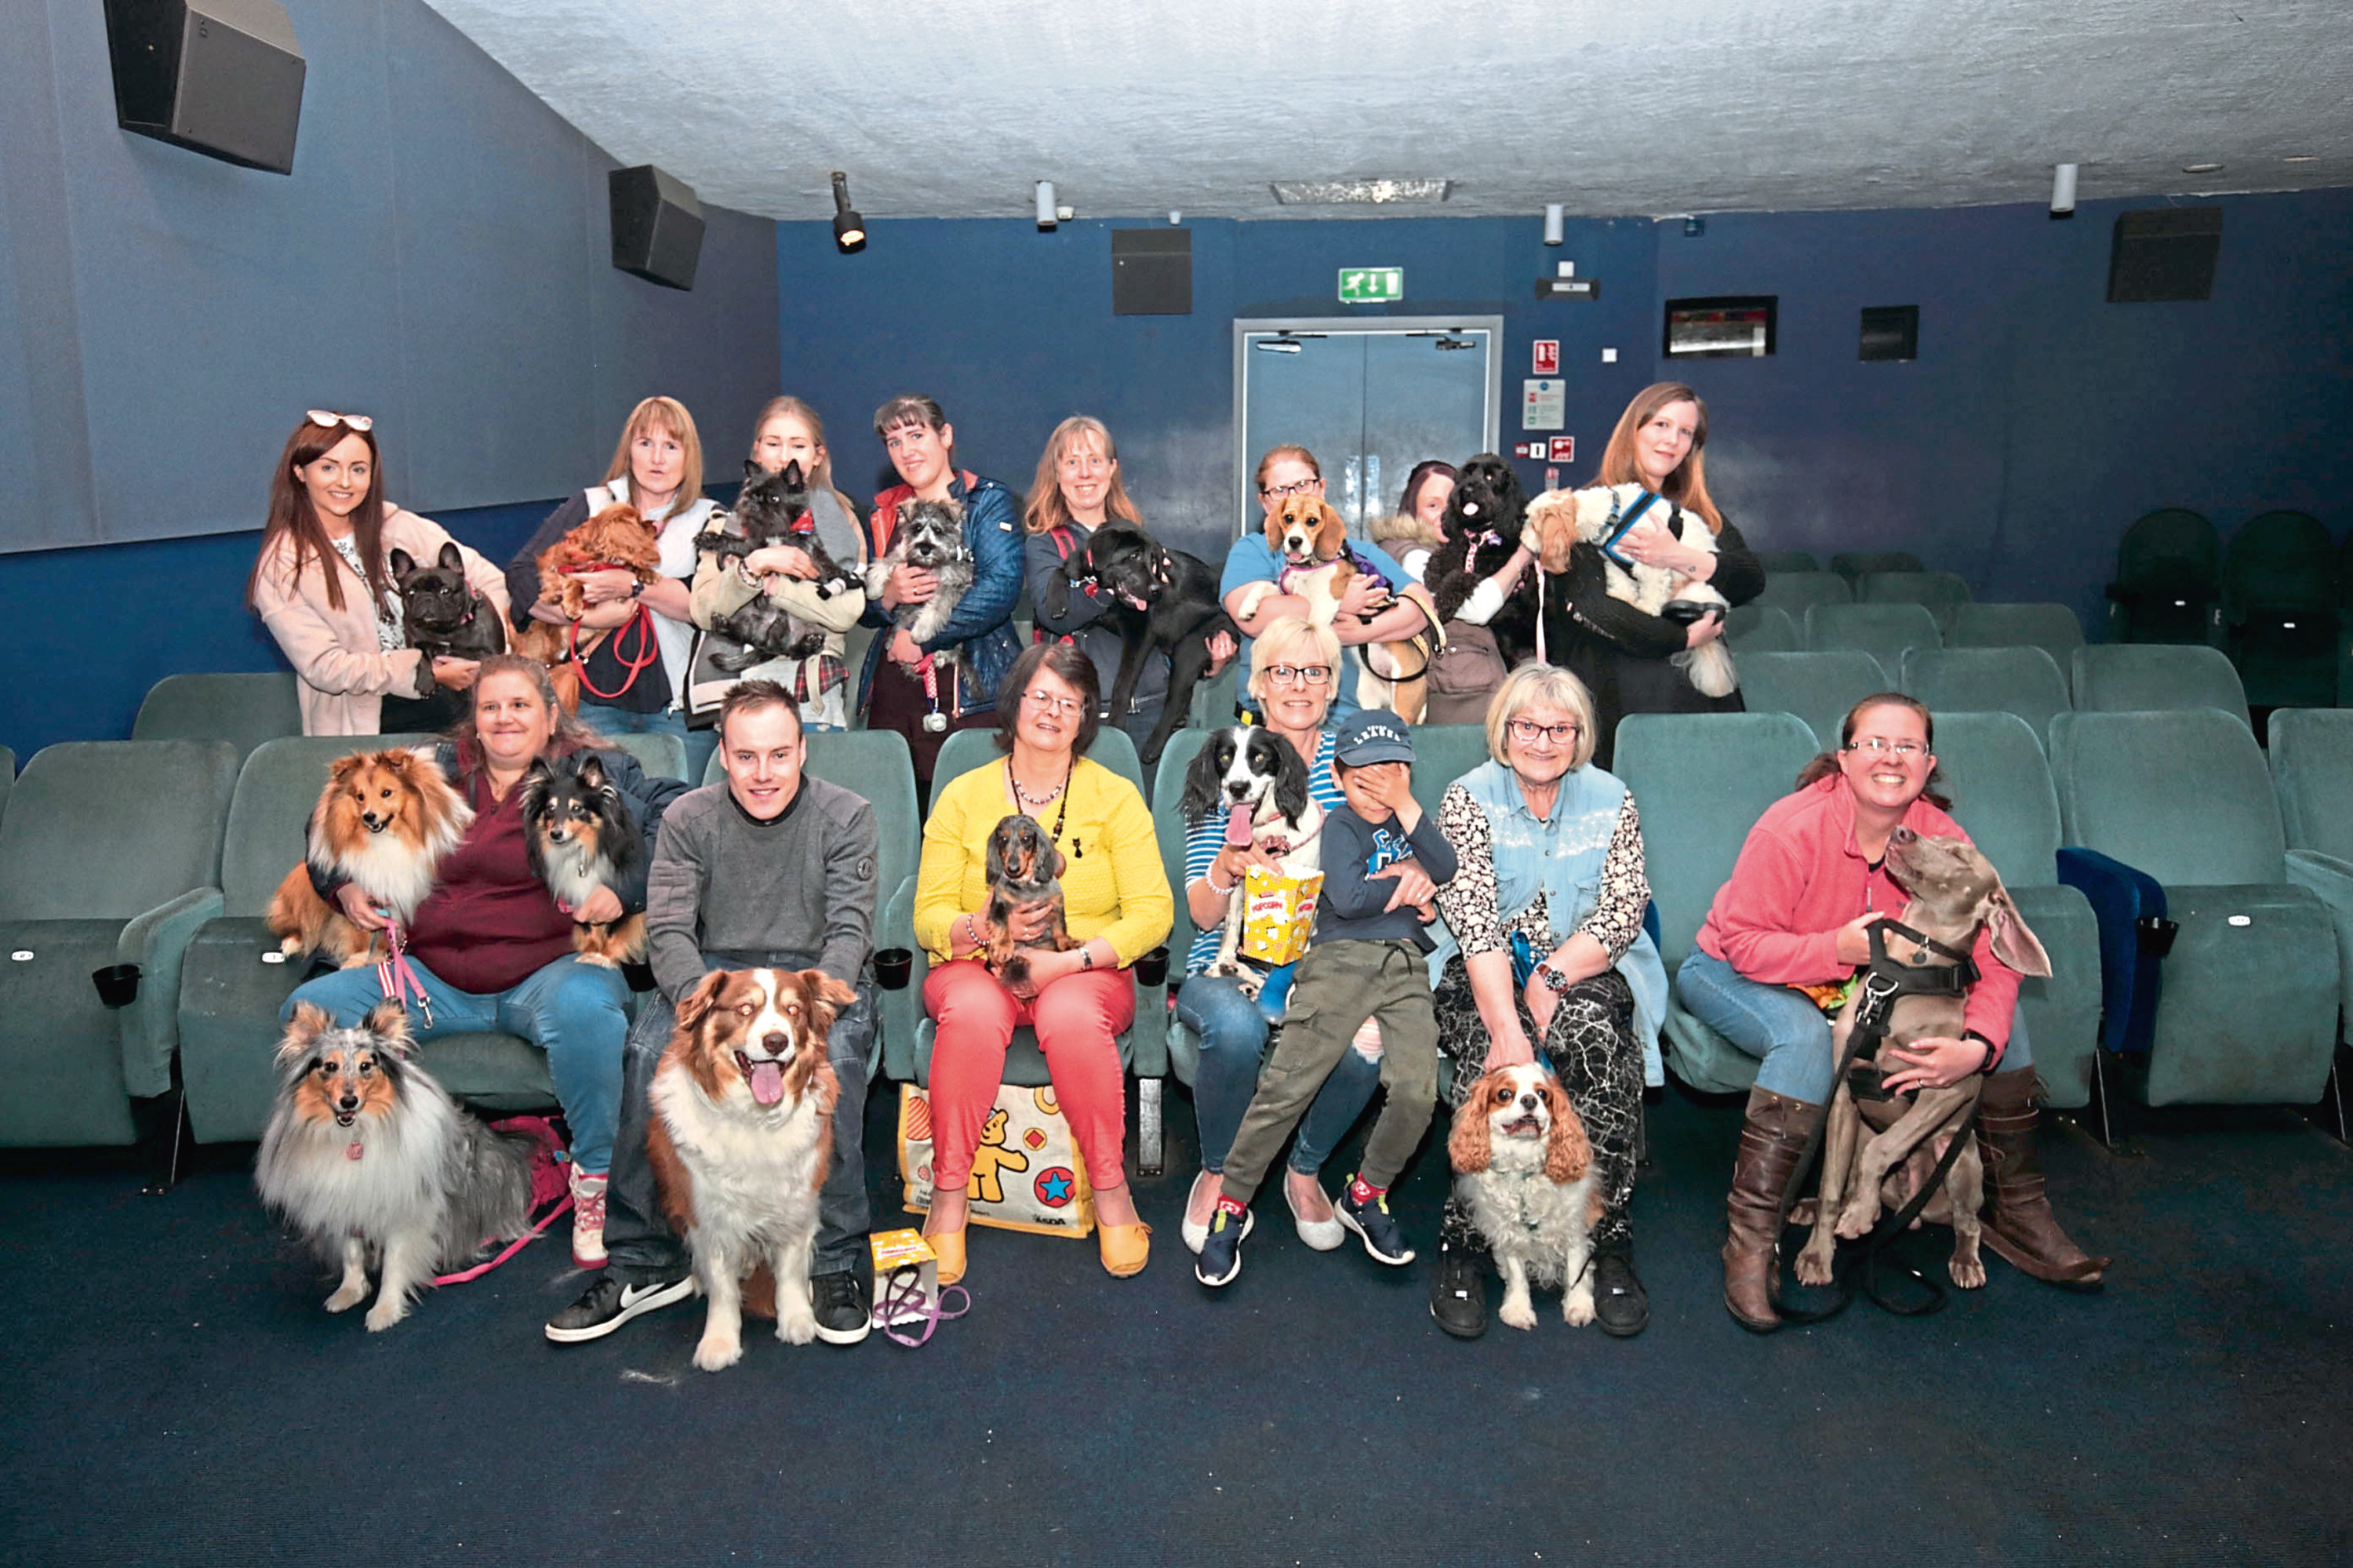 Dogs and owners at the Playhouse in Perth